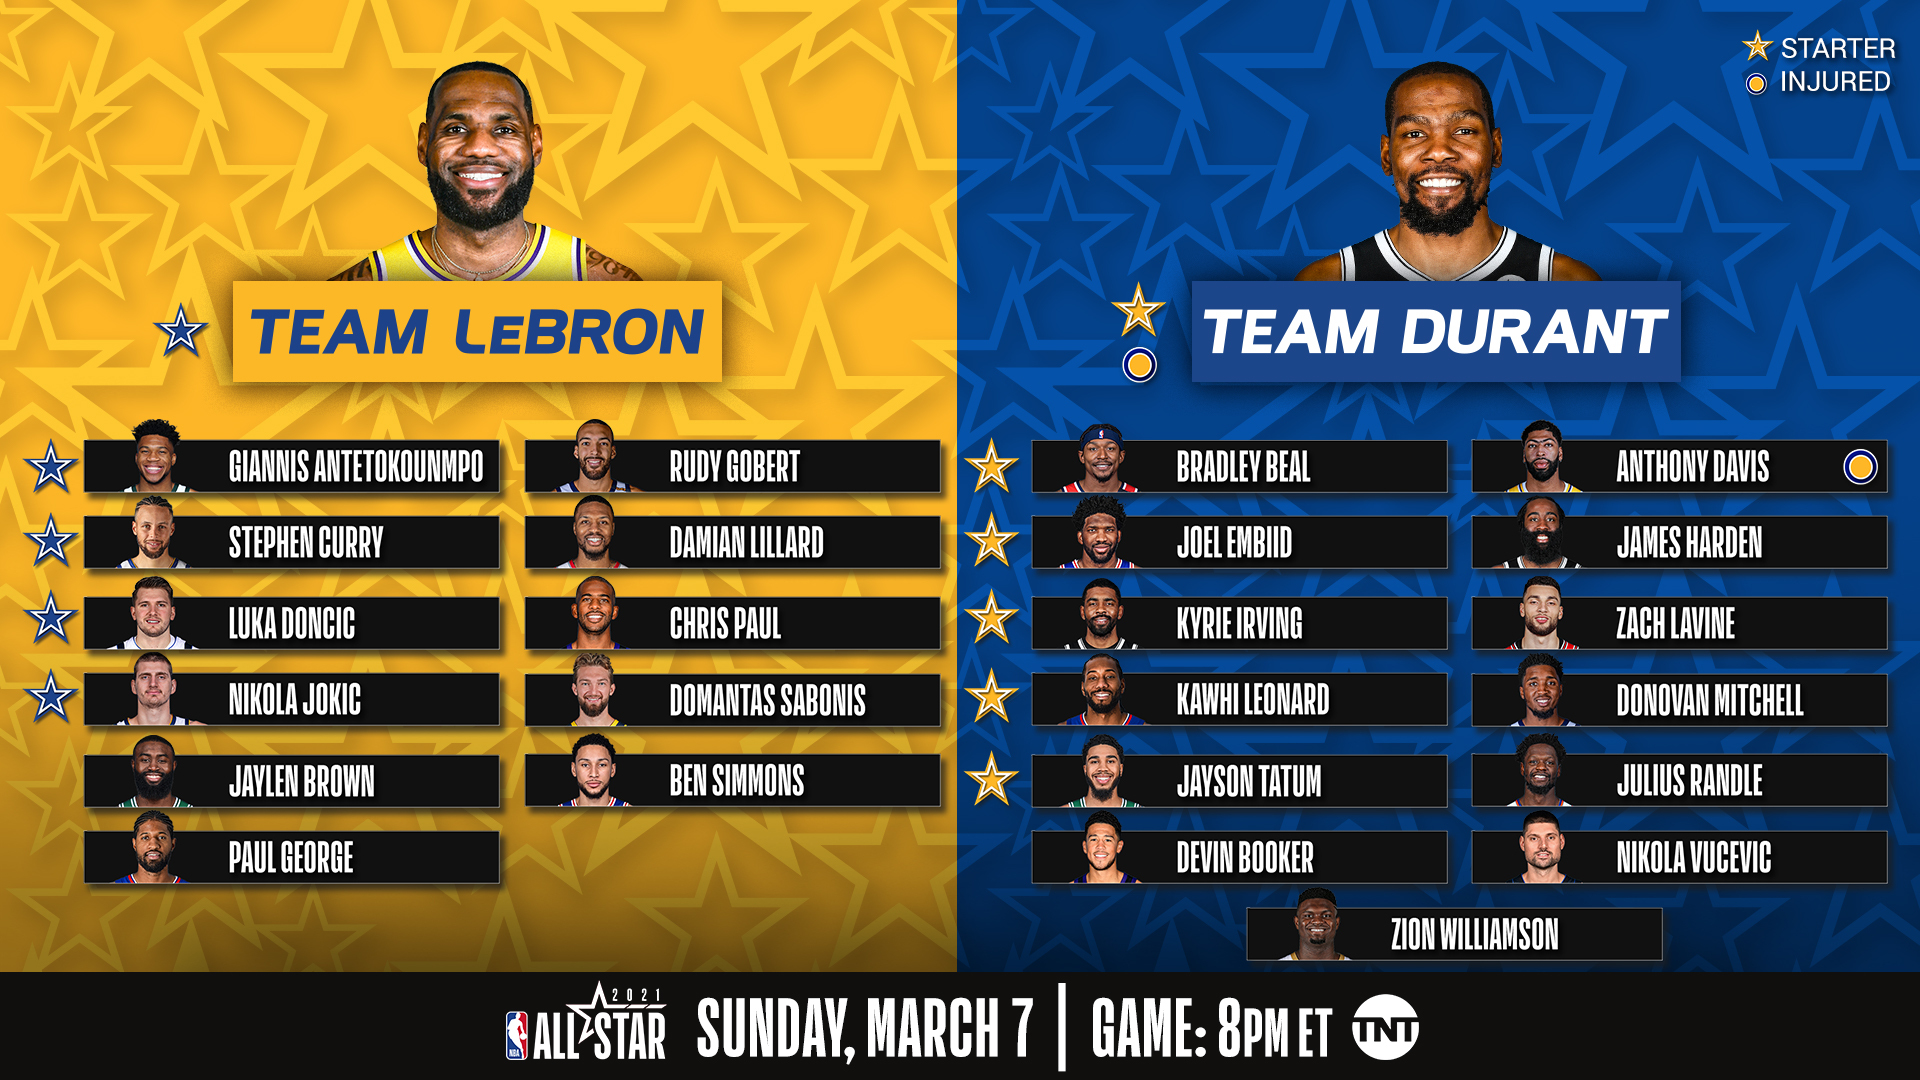 See how Team LeBron stacks up with Team Durant